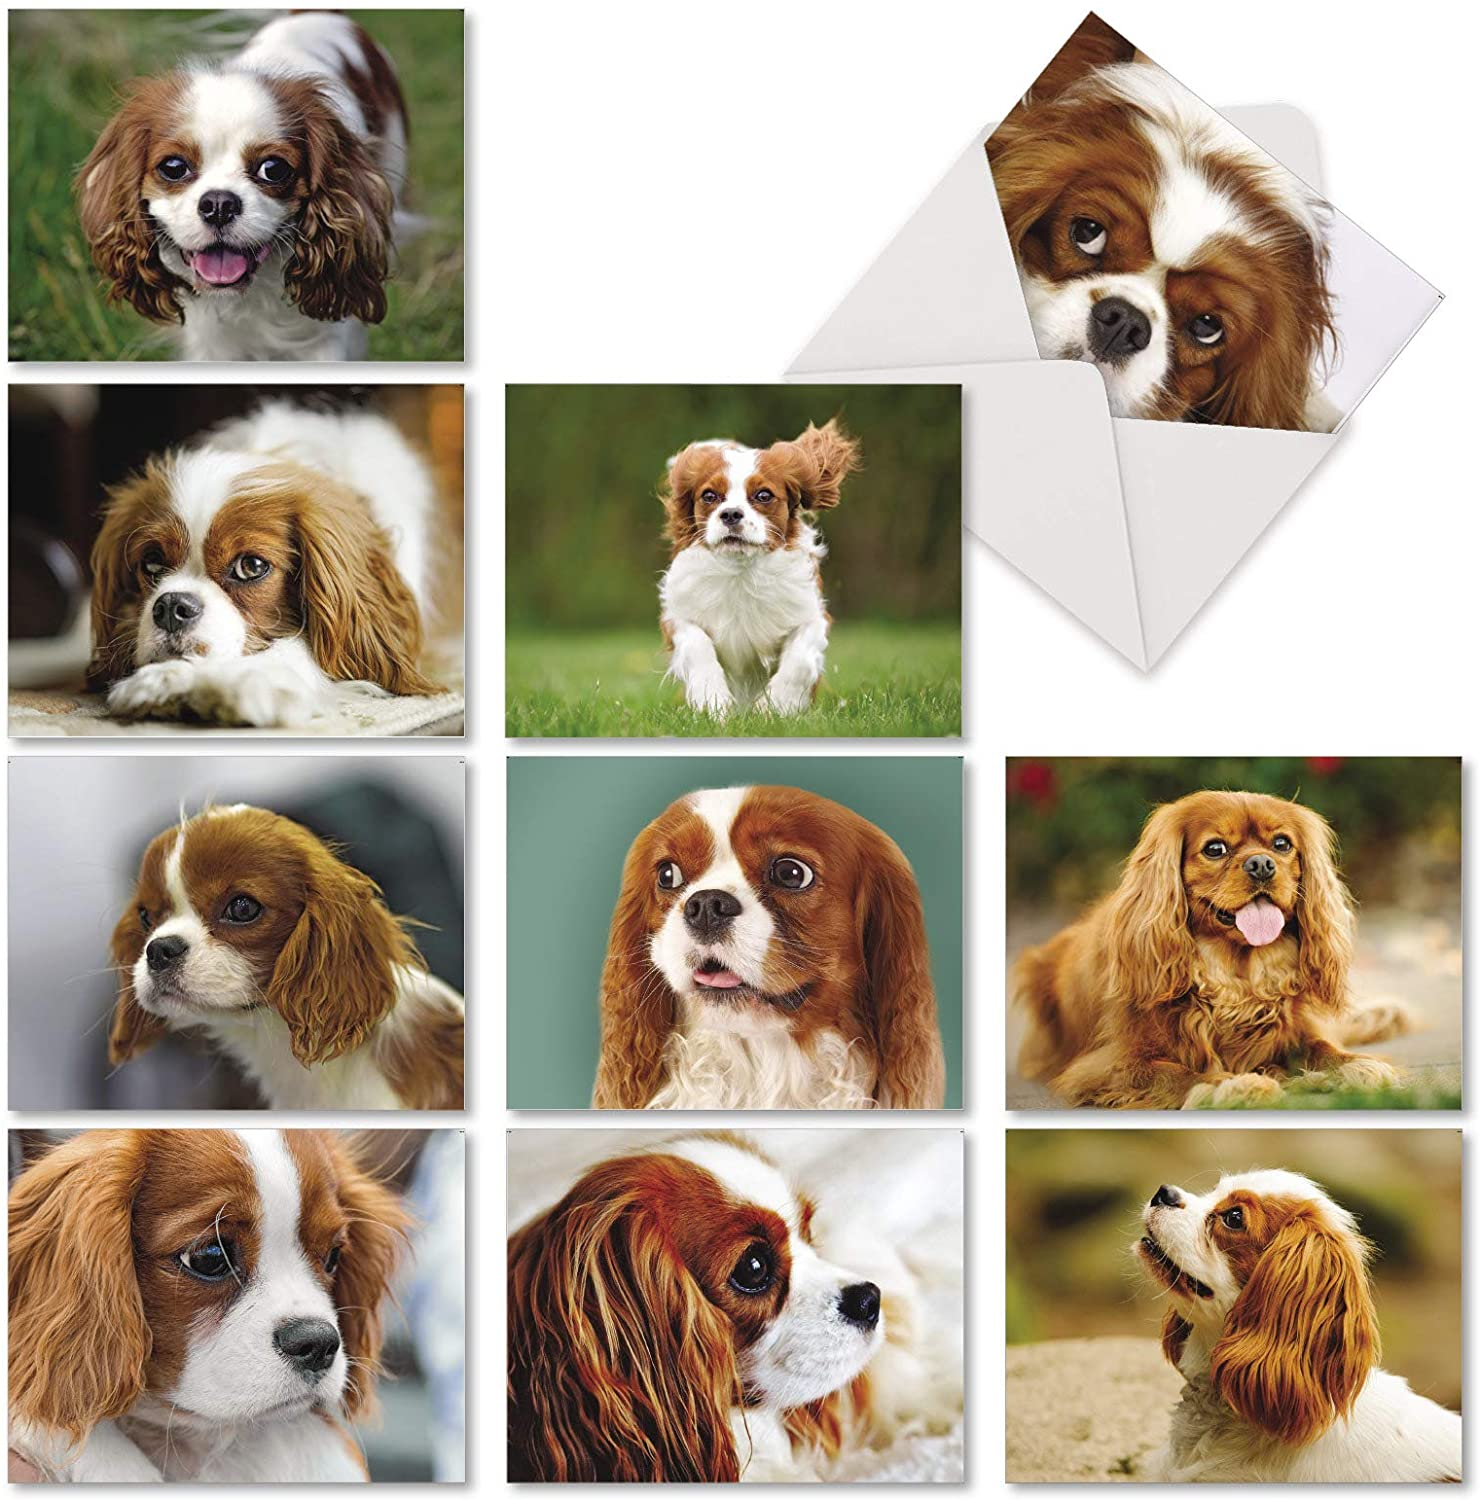 The Best Card Company - 10 Adorable Blank Dog Cards (4 x 5.12 Inch) - Pet Dog Breed Assortment, Boxed - Cavalier King Charles AM6831OCB-B1x10